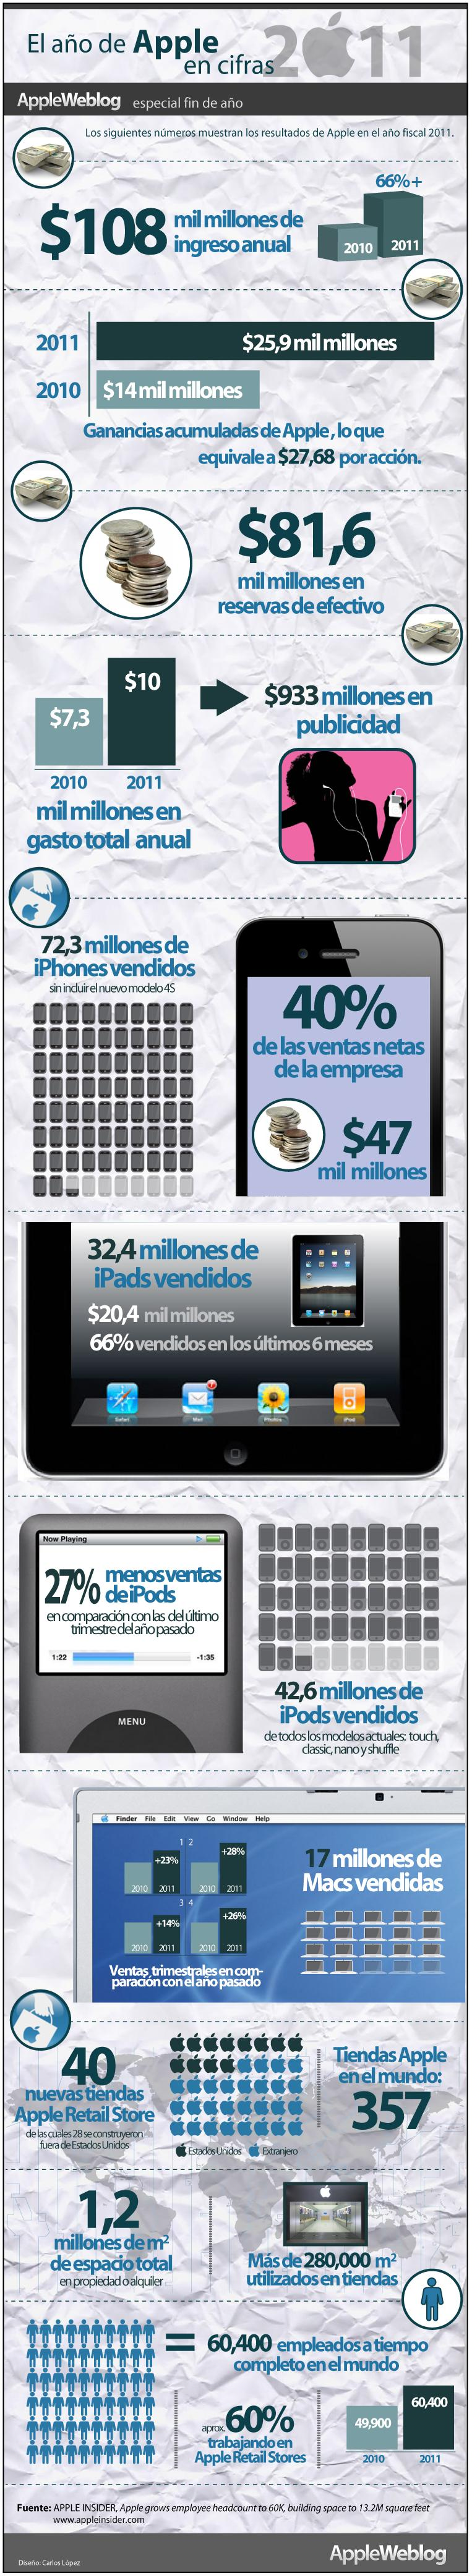 apple 2011 informe de negocio